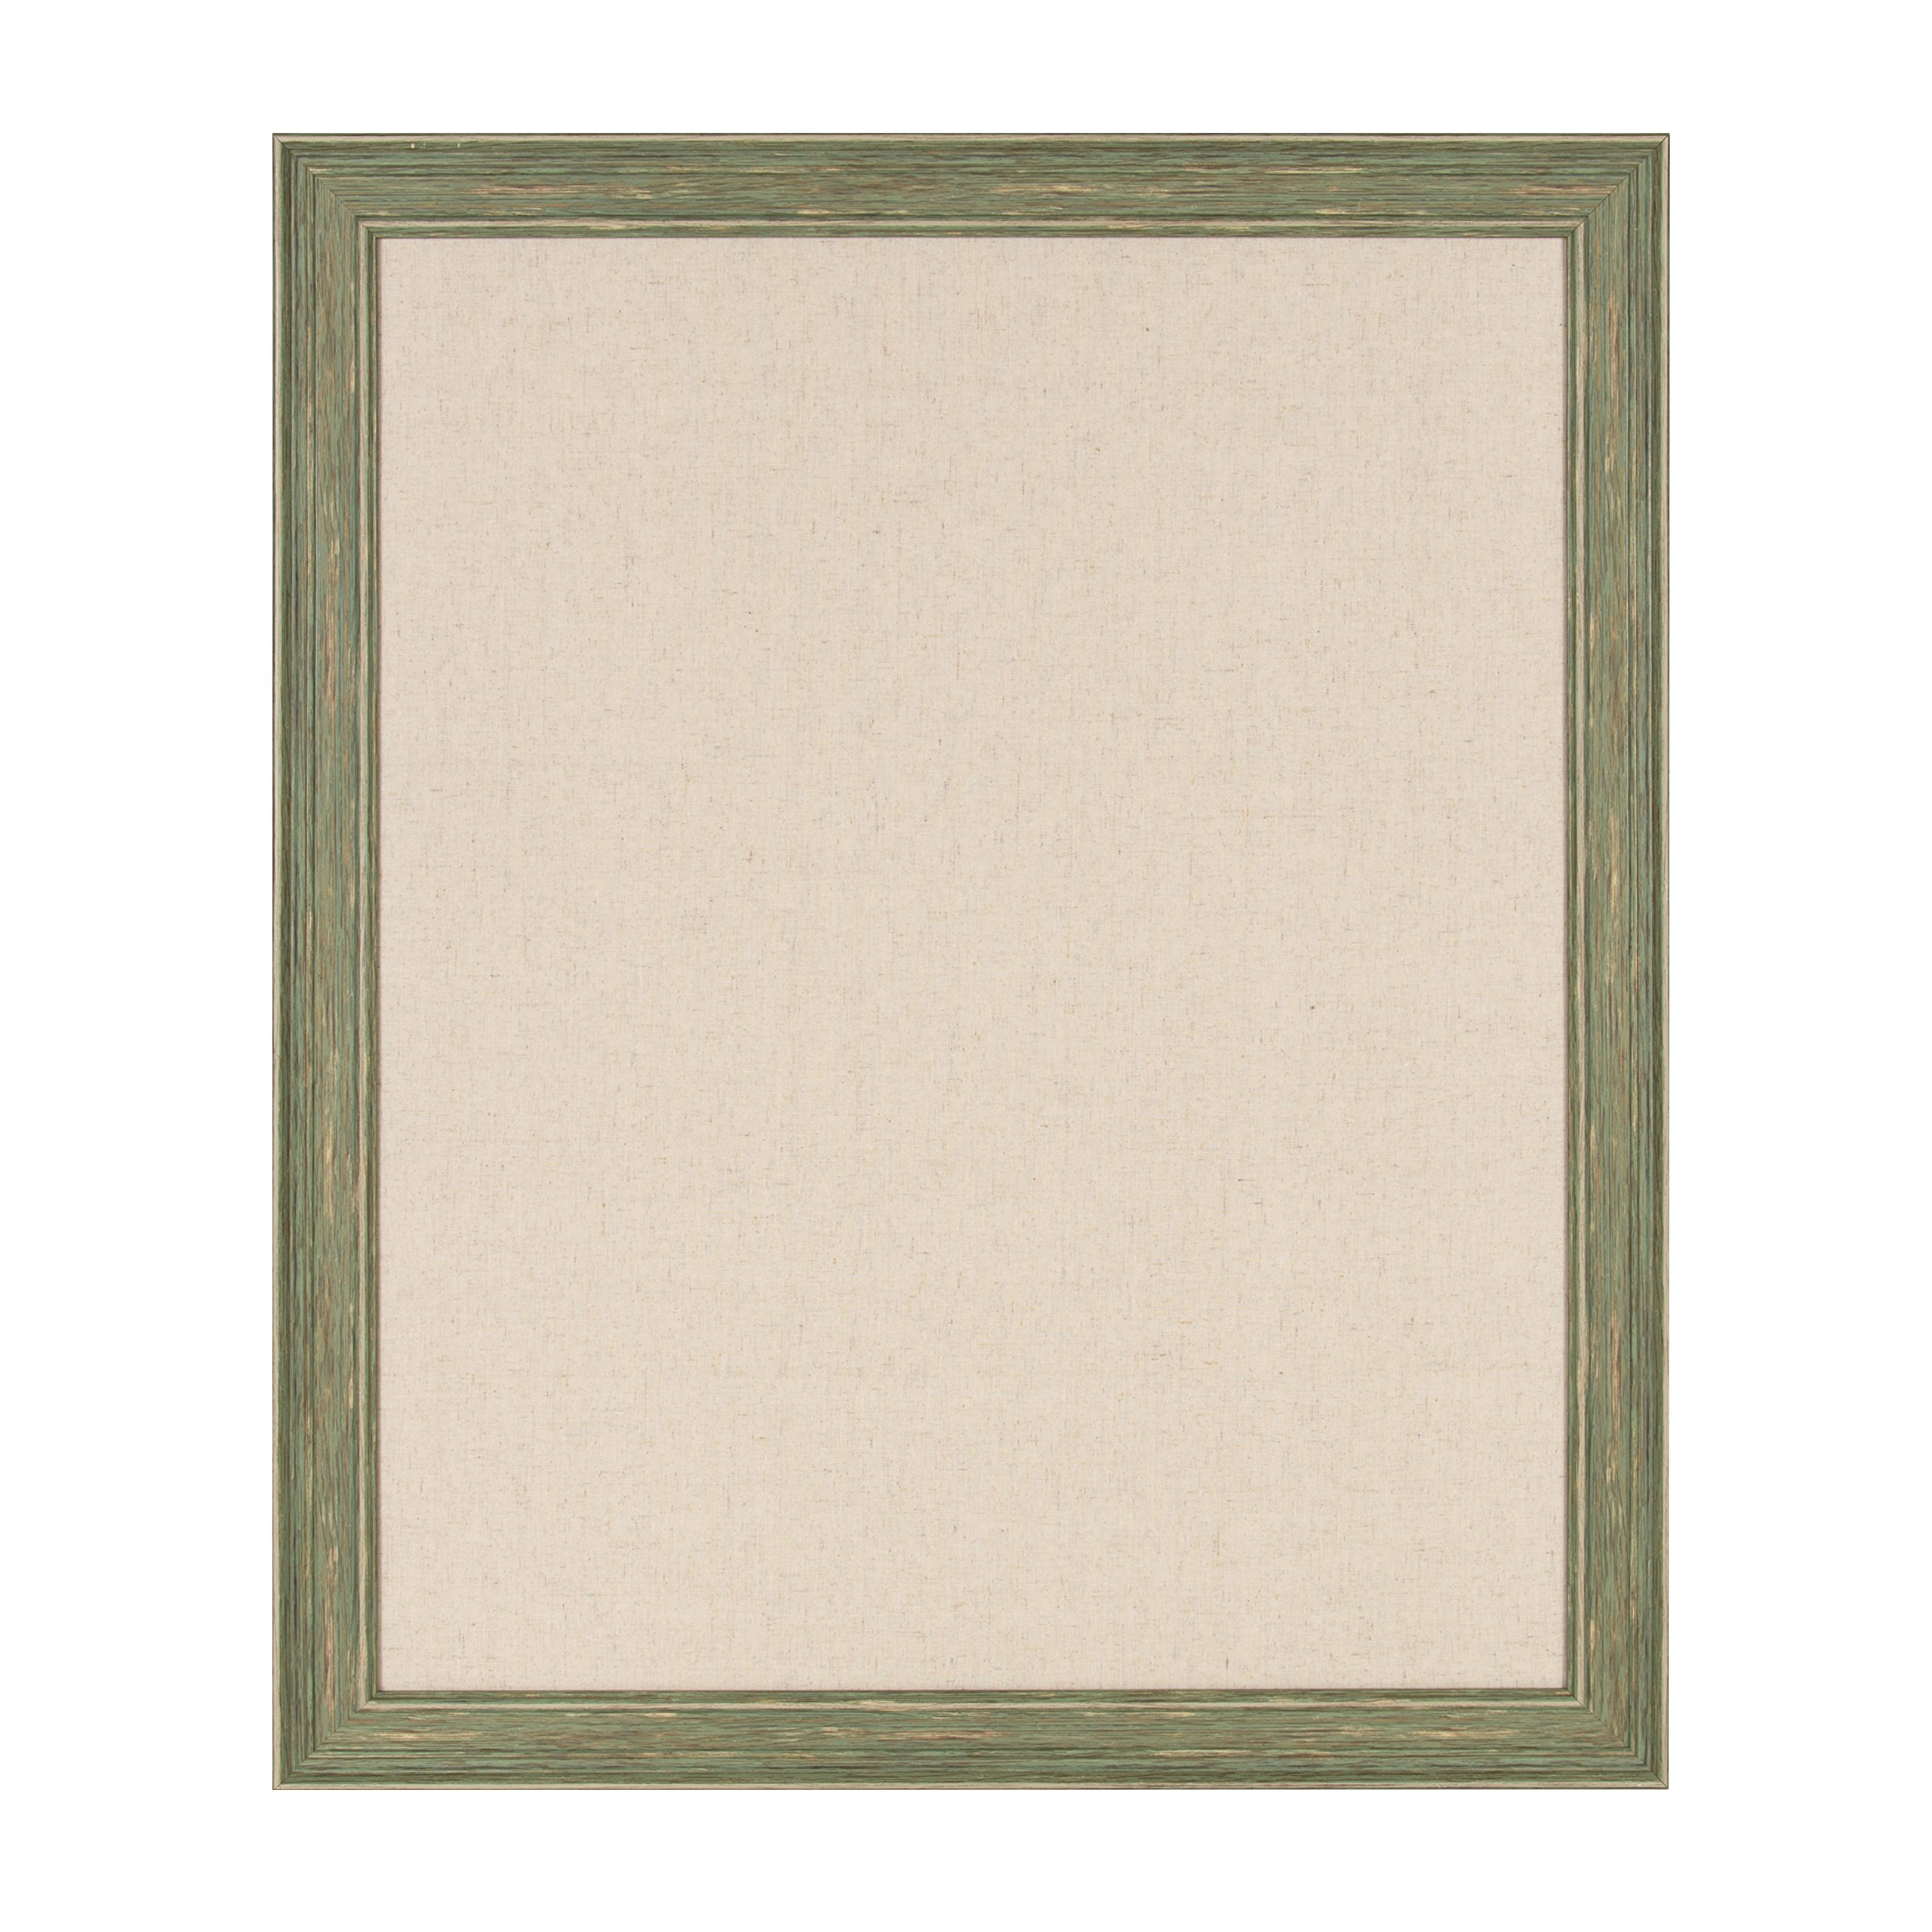 DesignOvation - Harvest Framed Decorative Pinboard, Large 27.5 x 33.5 Inches, Rustic Green by DesignOvation